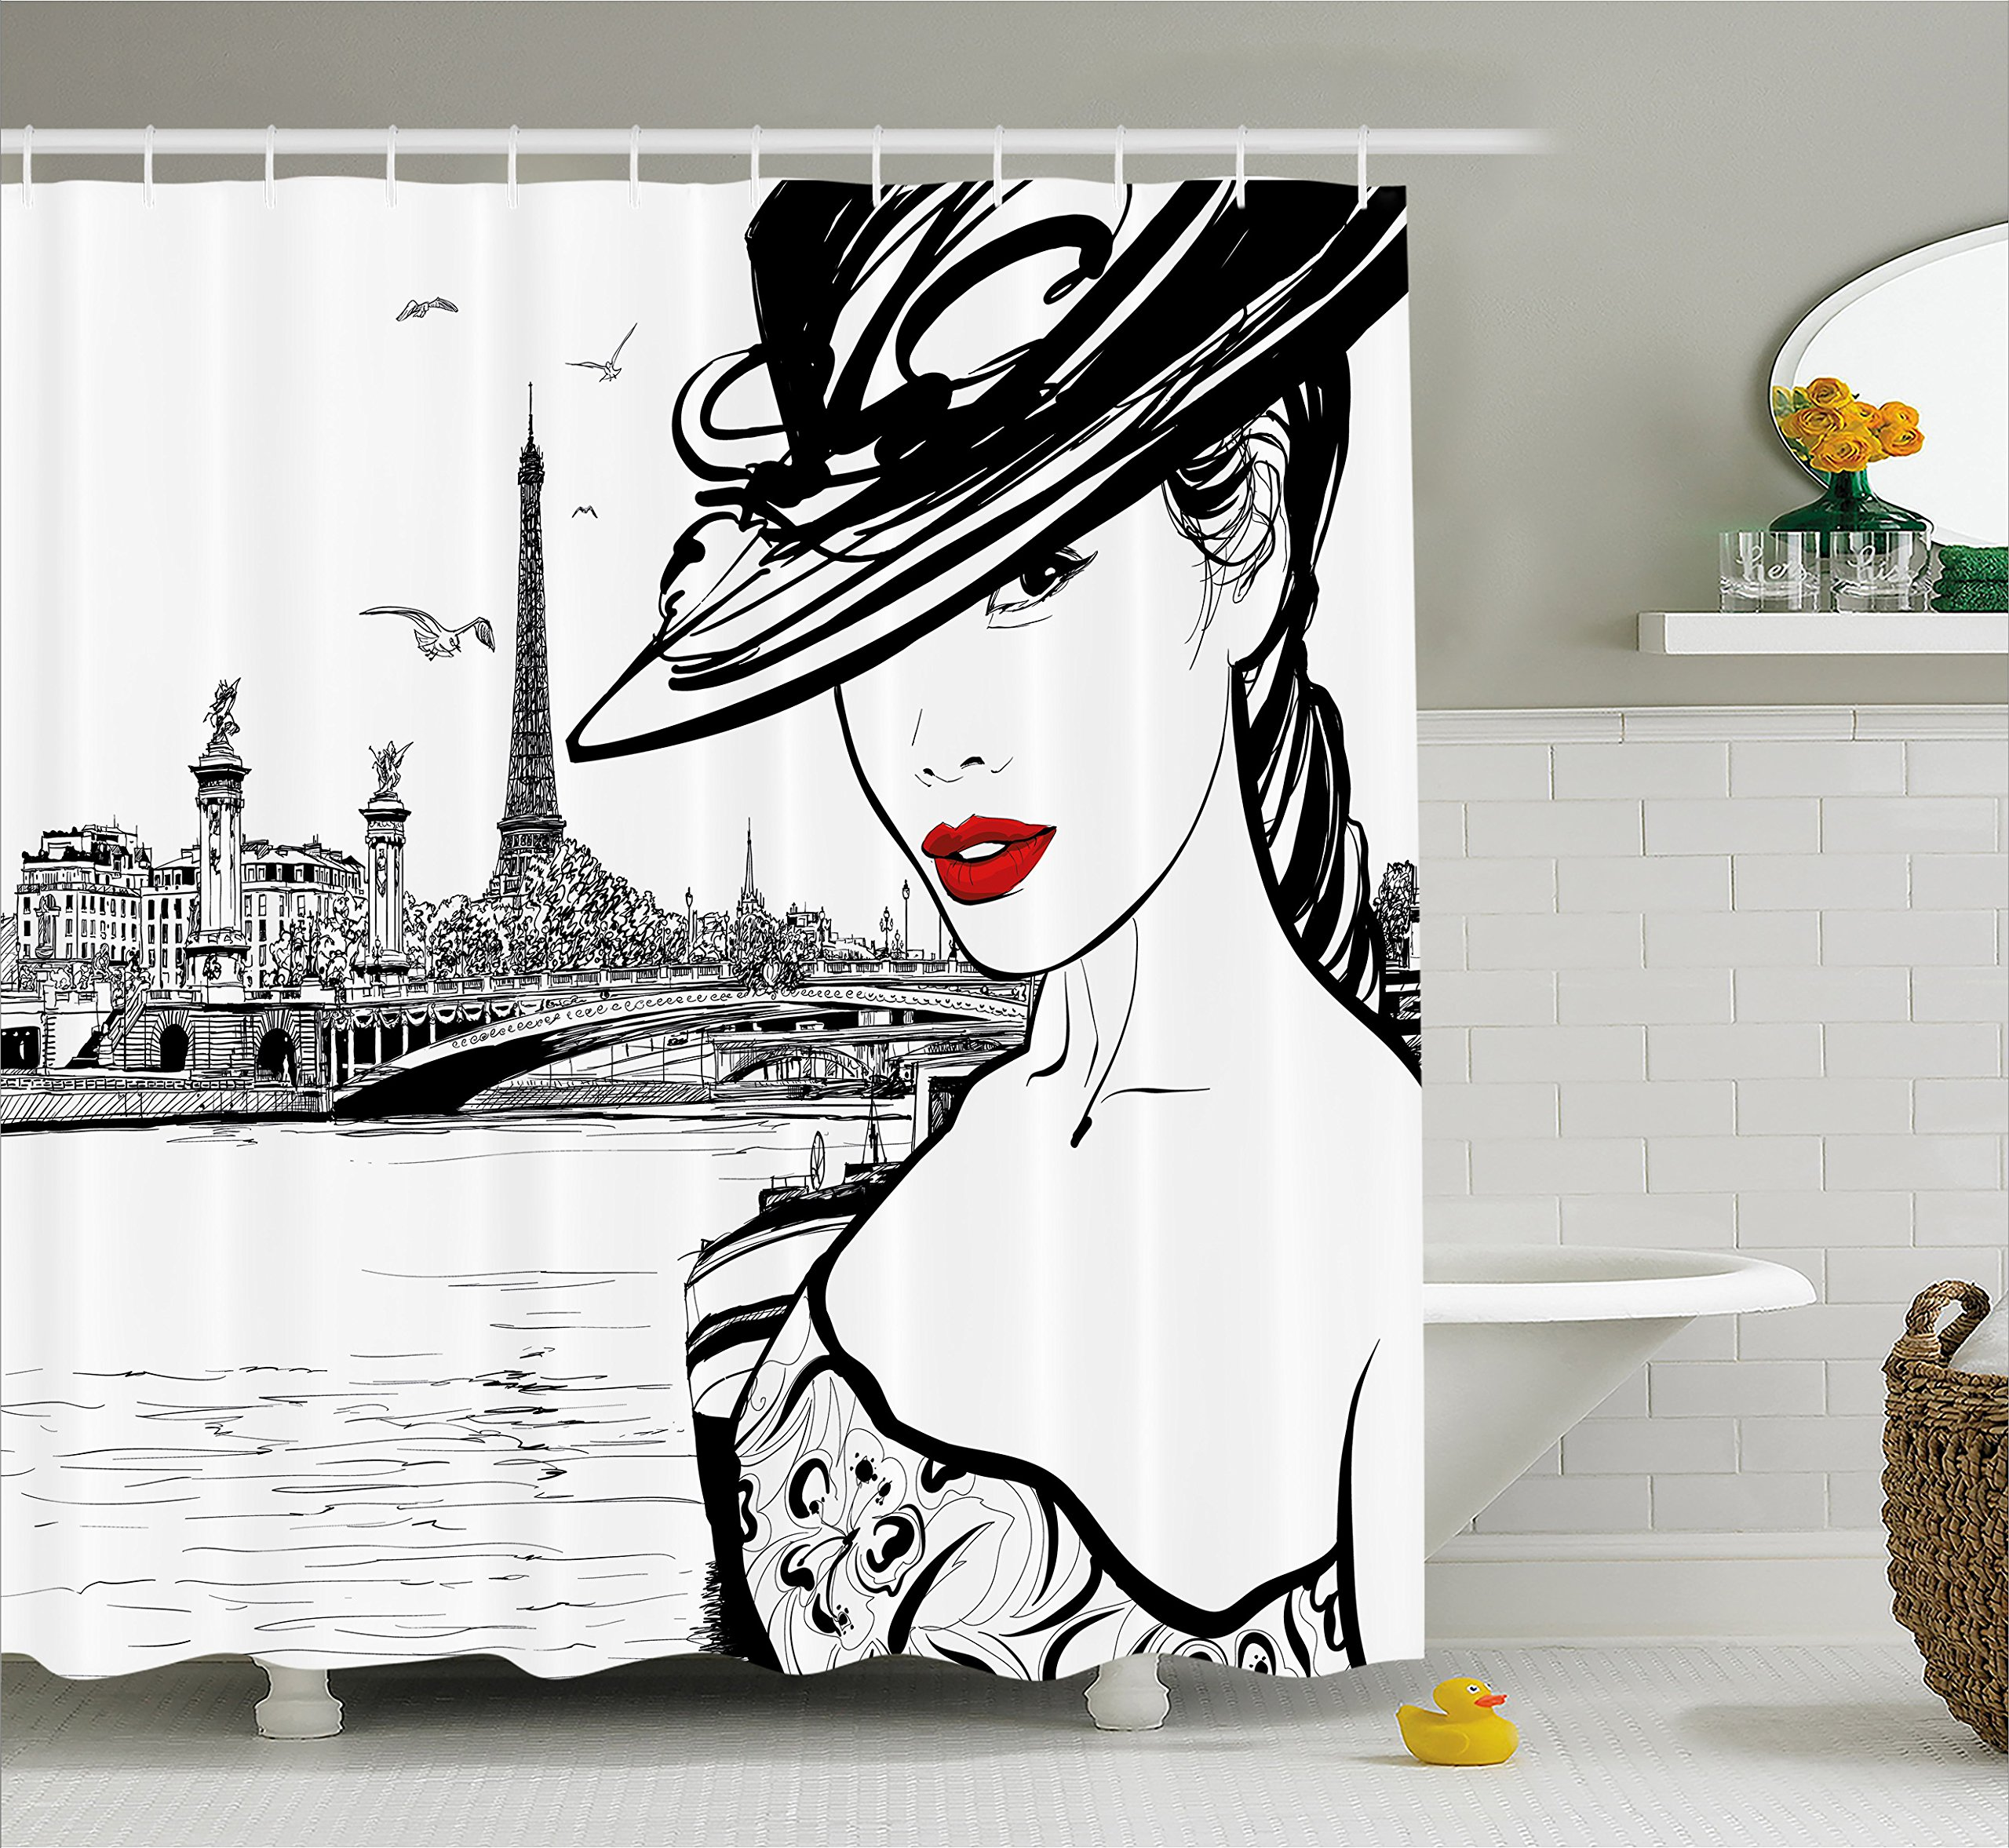 Fashion House Decor Shower Curtain by Ambesonne, Hand Drawn Girl in Makeup by Seine River in Paris European Life Image, Fabric Bathroom Decor Set with Hooks, 70 Inches, Black White